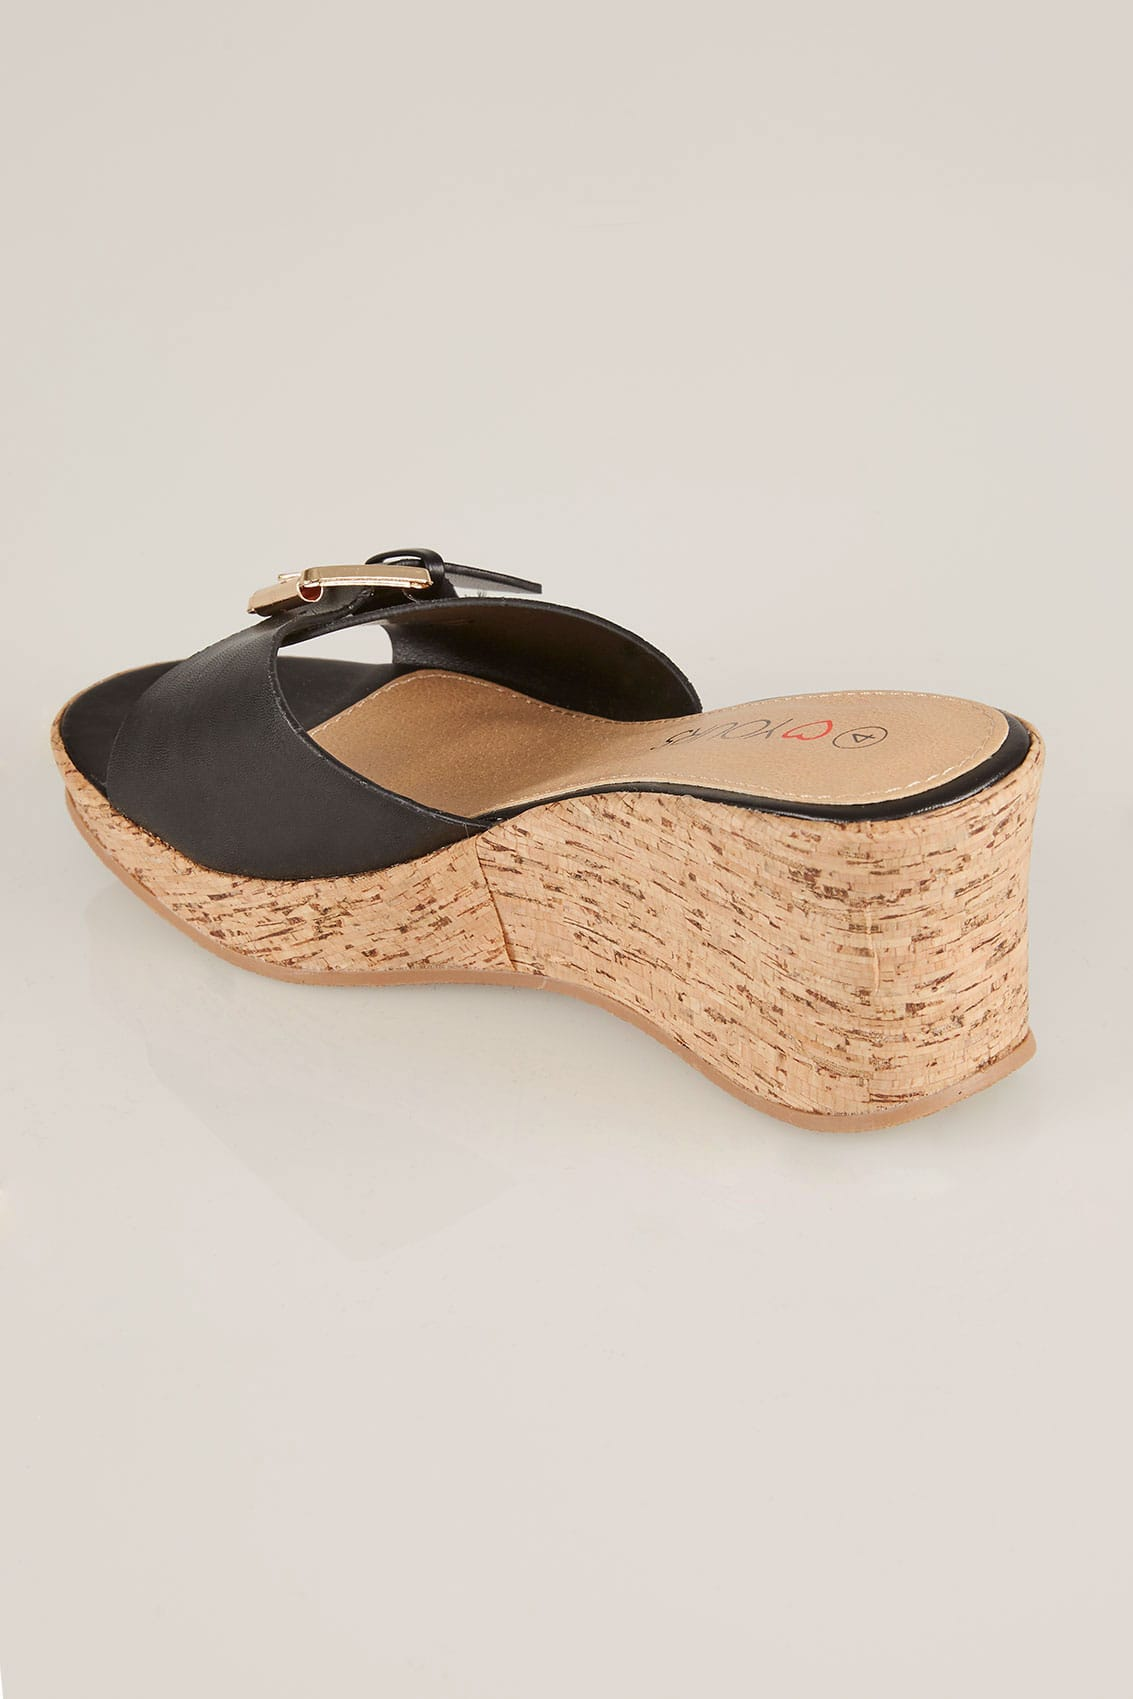 Black Cork Wedges In Eee Fit-4150